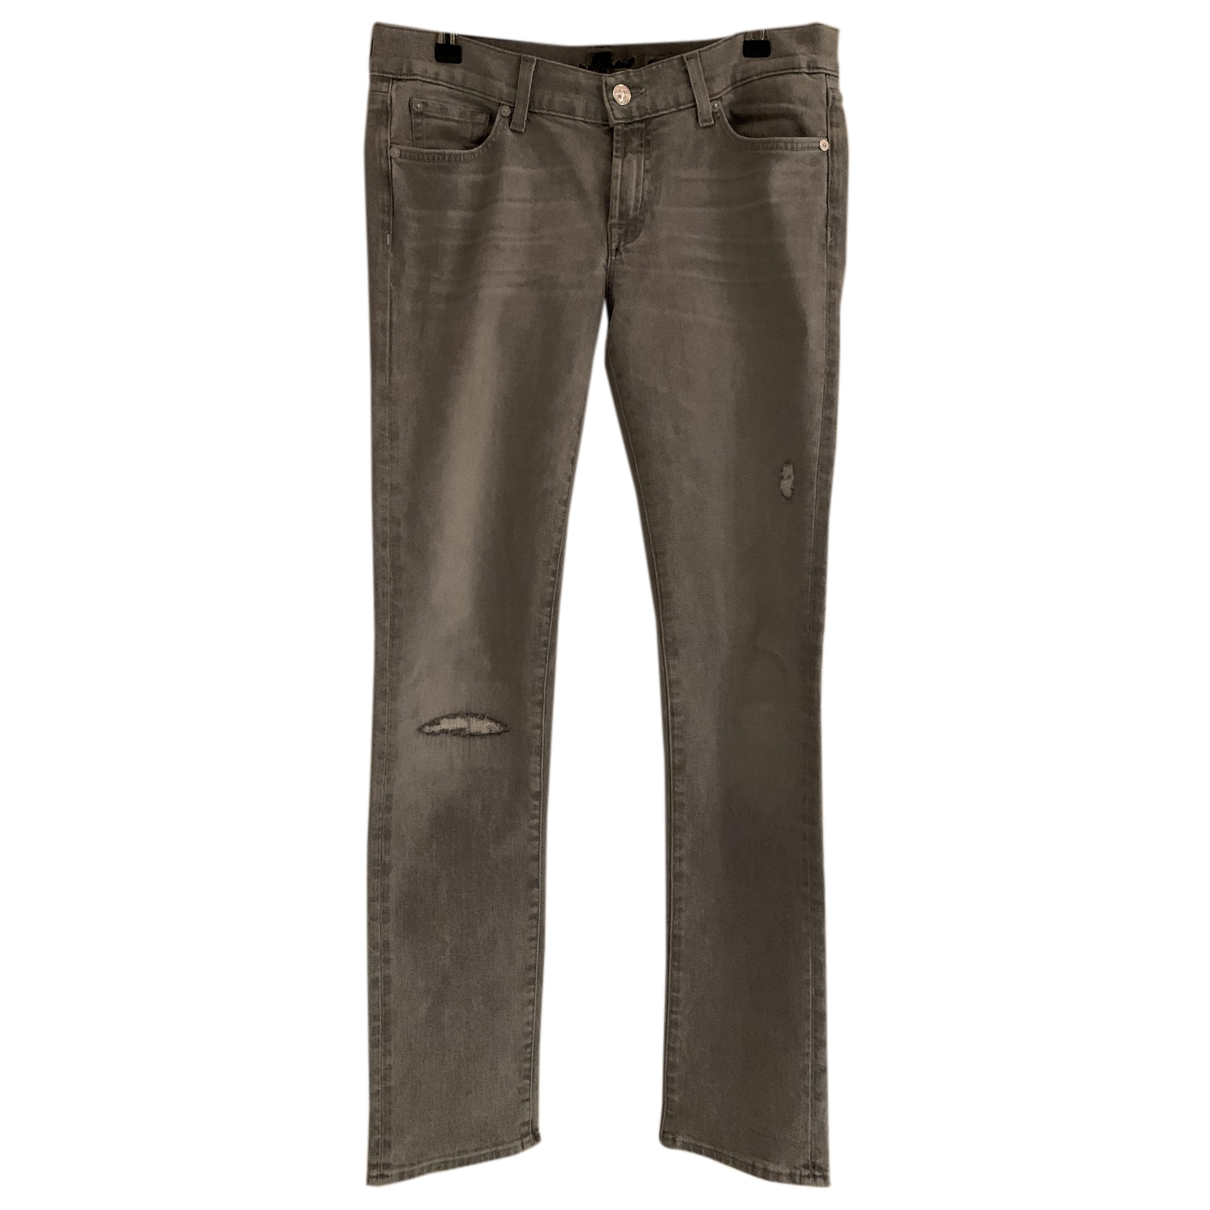 7 For All Mankind \N Grey Denim - Jeans Jeans for Women 38 FR